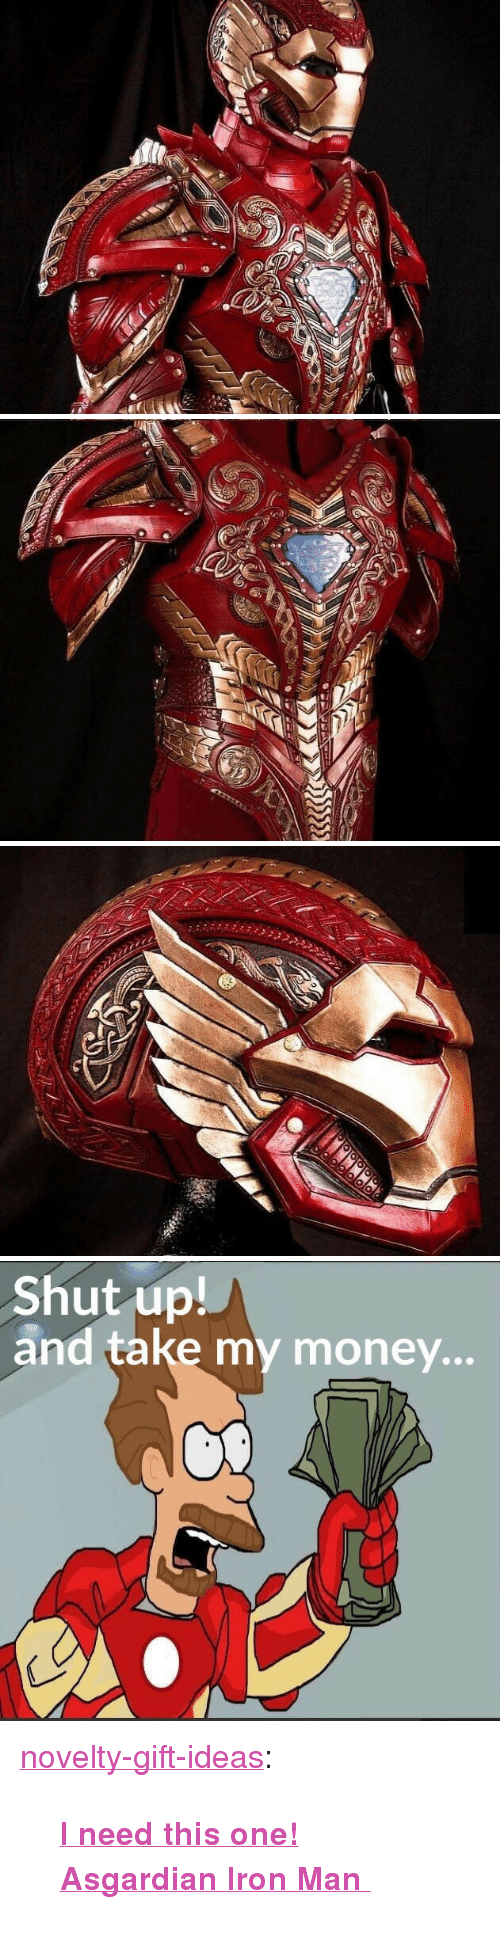 "Shut Up And Take: Shut up!  and take my money... <p><a href=""https://novelty-gift-ideas.tumblr.com/post/160150765313/i-need-this-one-asgardian-iron-man"" class=""tumblr_blog"">novelty-gift-ideas</a>:</p><blockquote><p><b><a href=""https://novelty-gift-ideas.com/prince-armory-custom-creations/"">  I need this one! Asgardian Iron Man  </a></b><br/></p></blockquote>"